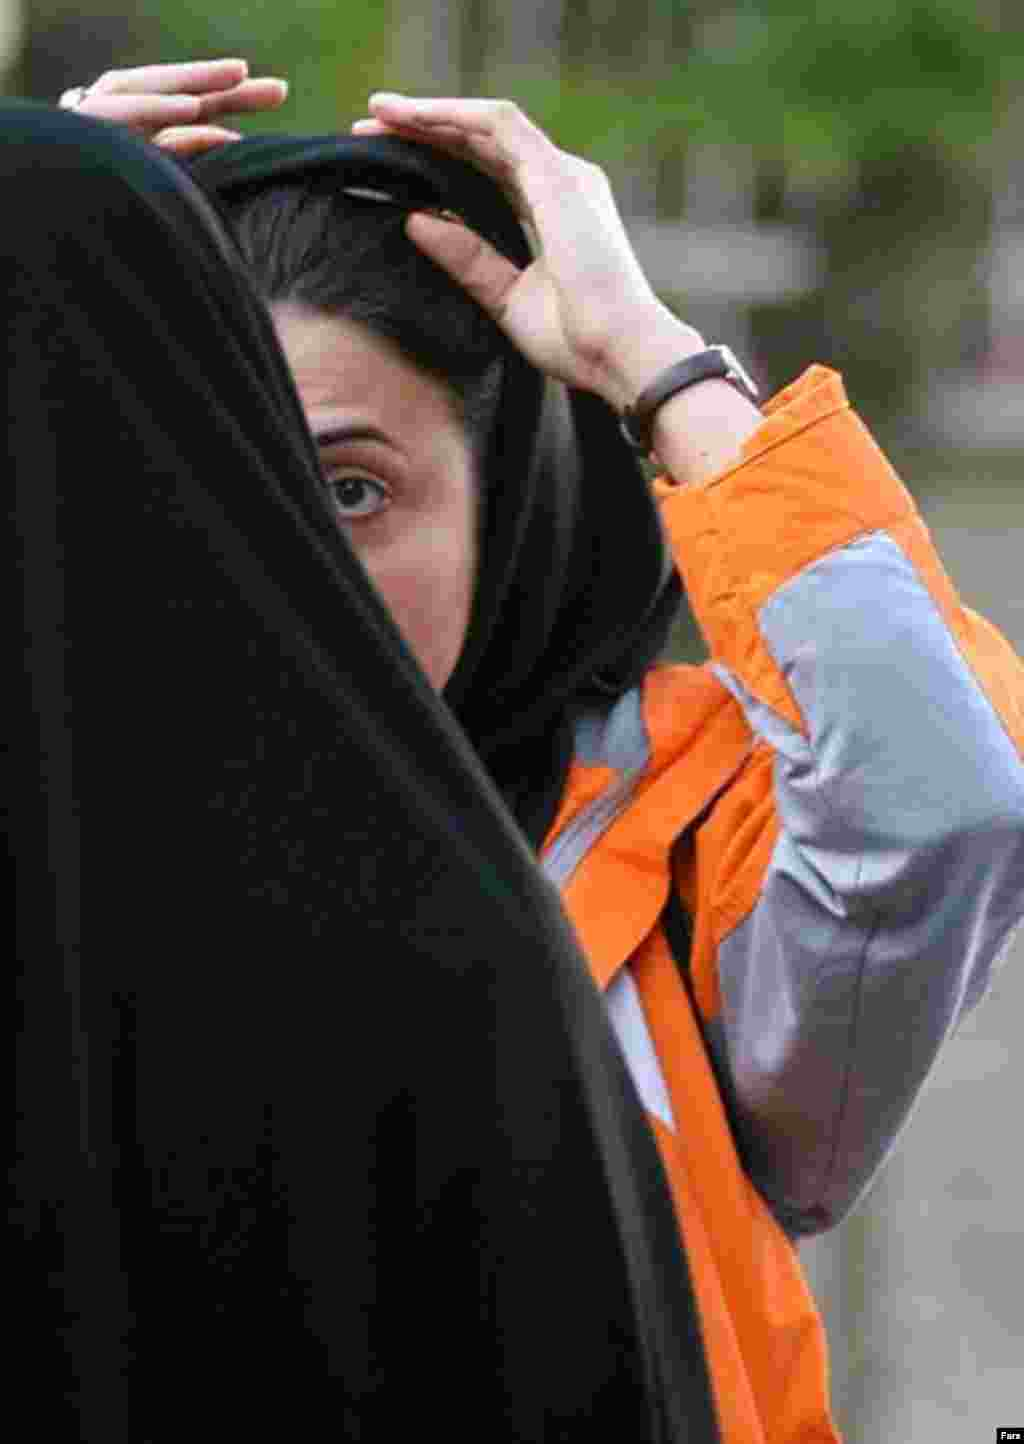 "Police and Basij activists check women for proper dress in Tehran on April 22 (Fars) - This year's crackdown has drawn mixed reactions among officials, the public, and the press. The head of Iran's judiciary, Ayatollah Mahmud Hashemi-Sharudi, has warned against heavy-handed actions against women. He was quoted by Iranian newspapers as saying that ""tough measures on social problems will backfire and have counterproductive effects."""